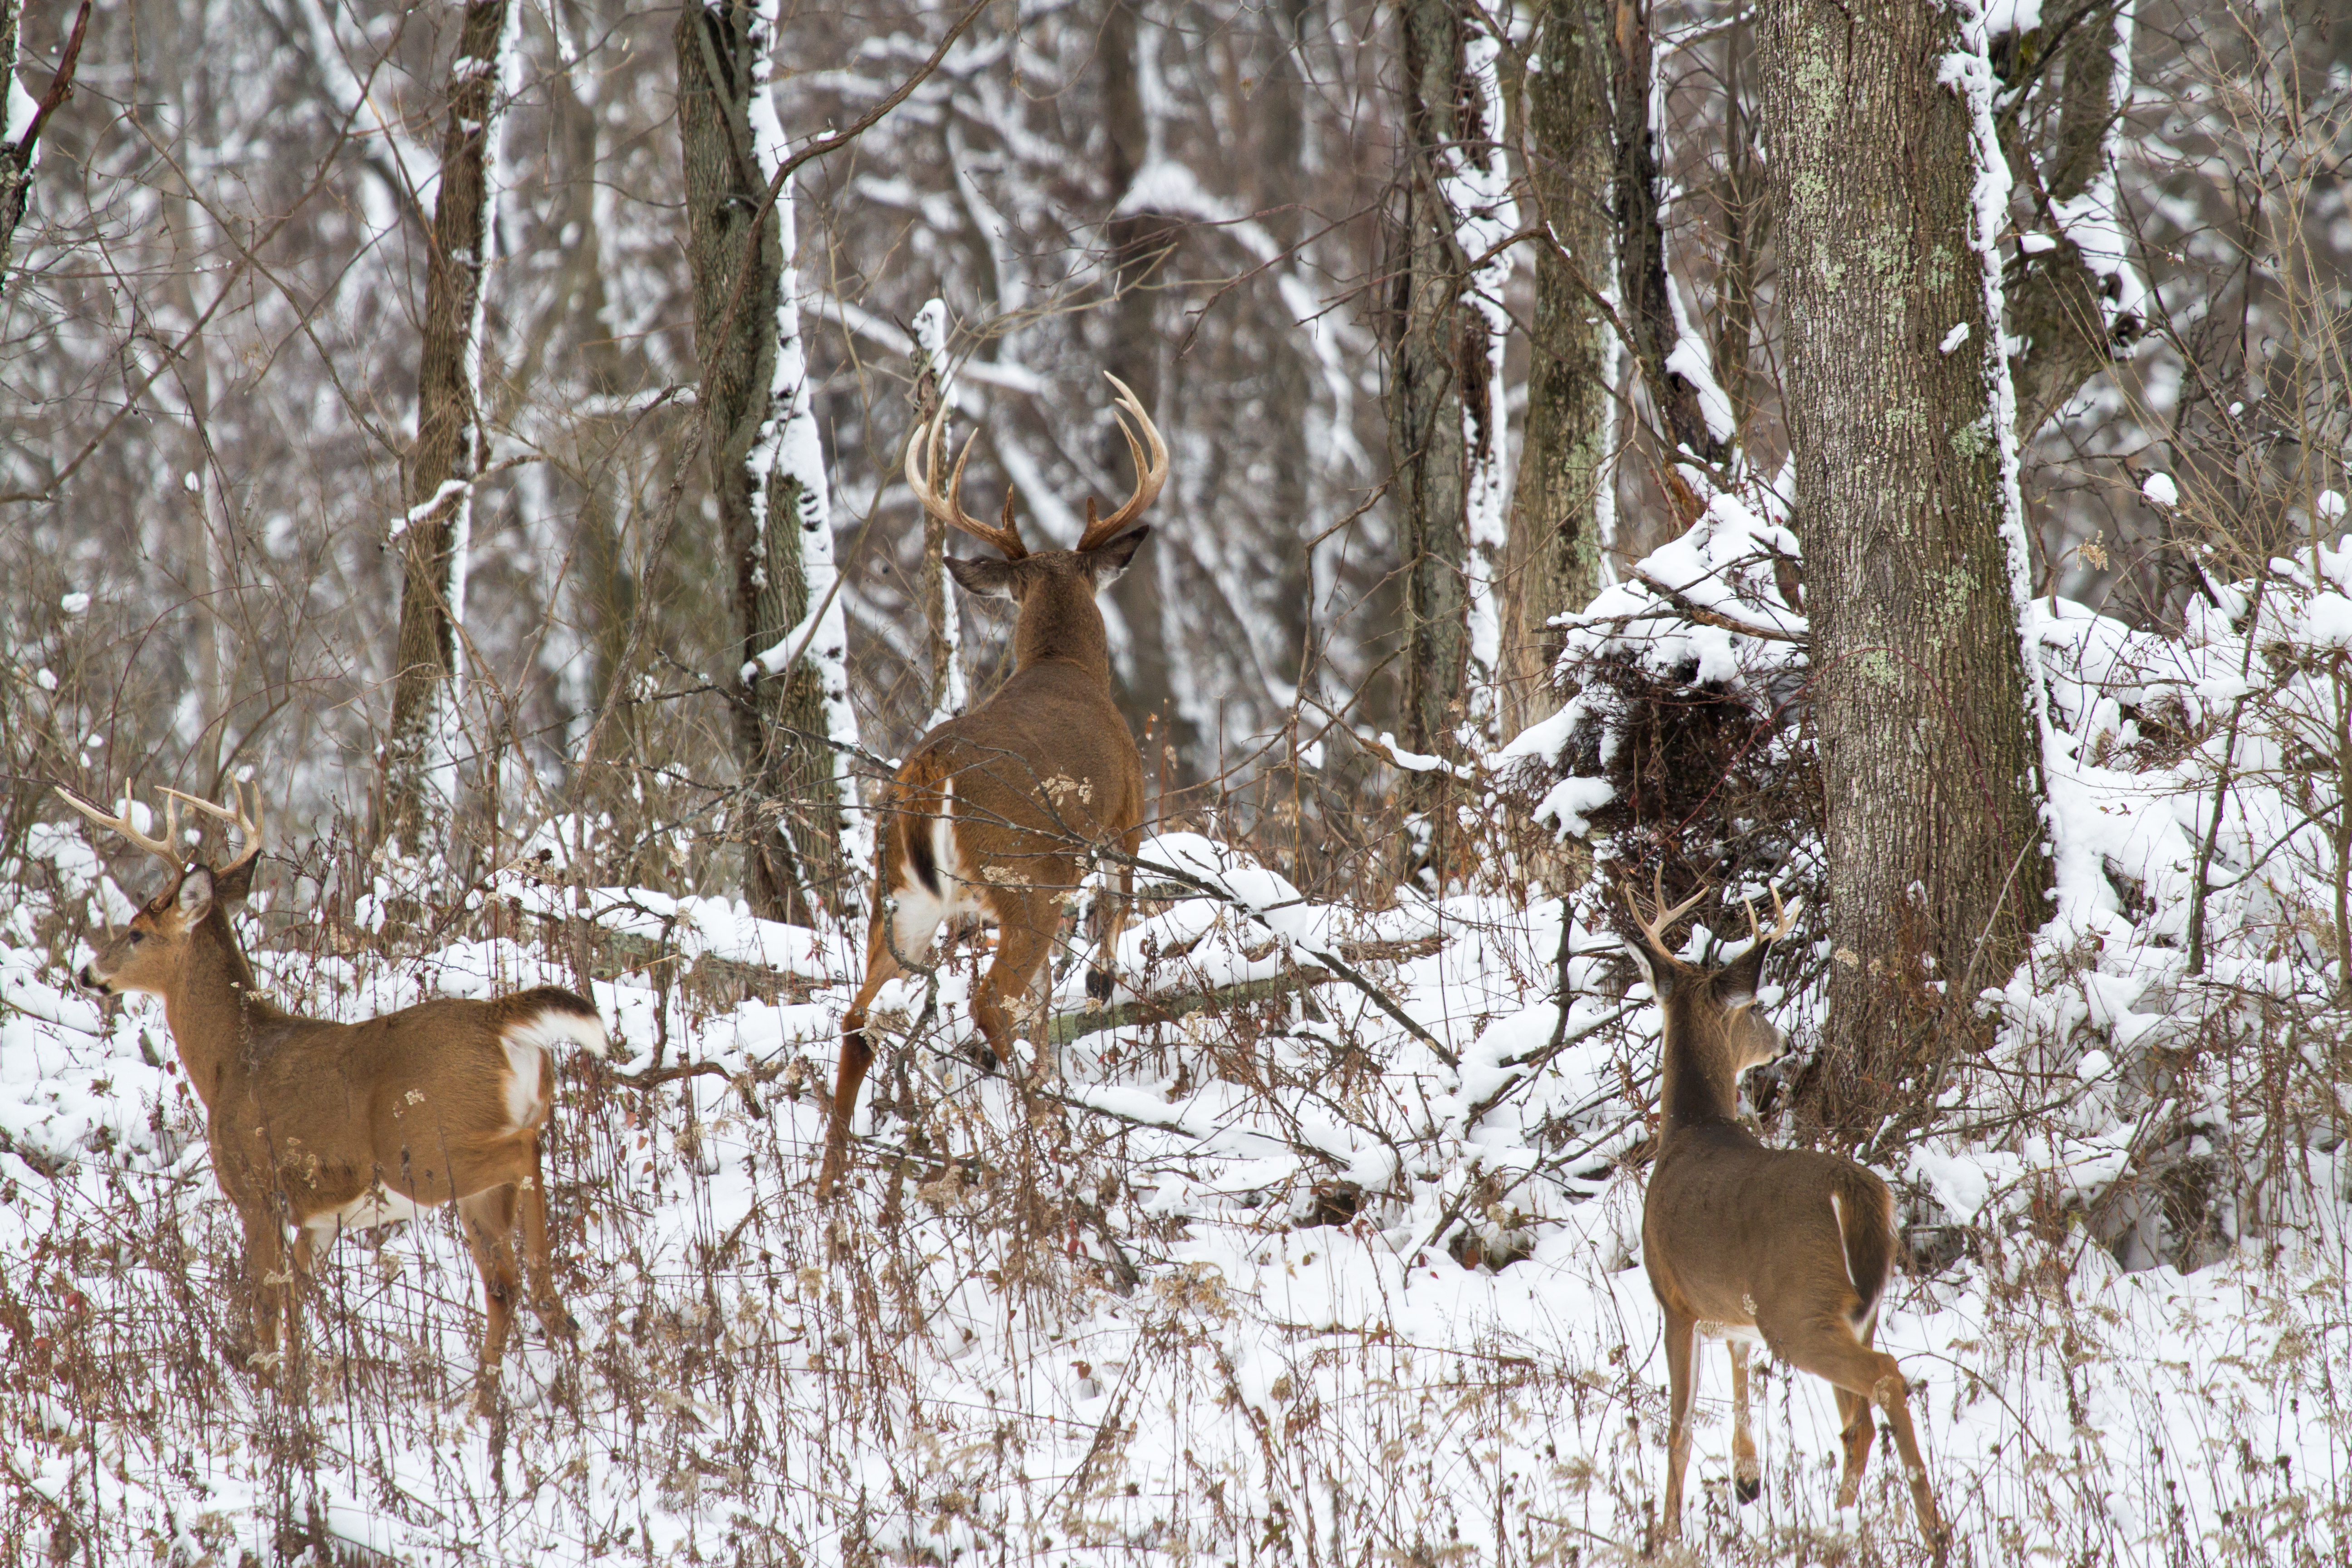 Oh Deer! Let's Rut - Metro Parks - Central Ohio Park System pertaining to 2020 Whitetail Rut Callendar In Ohio